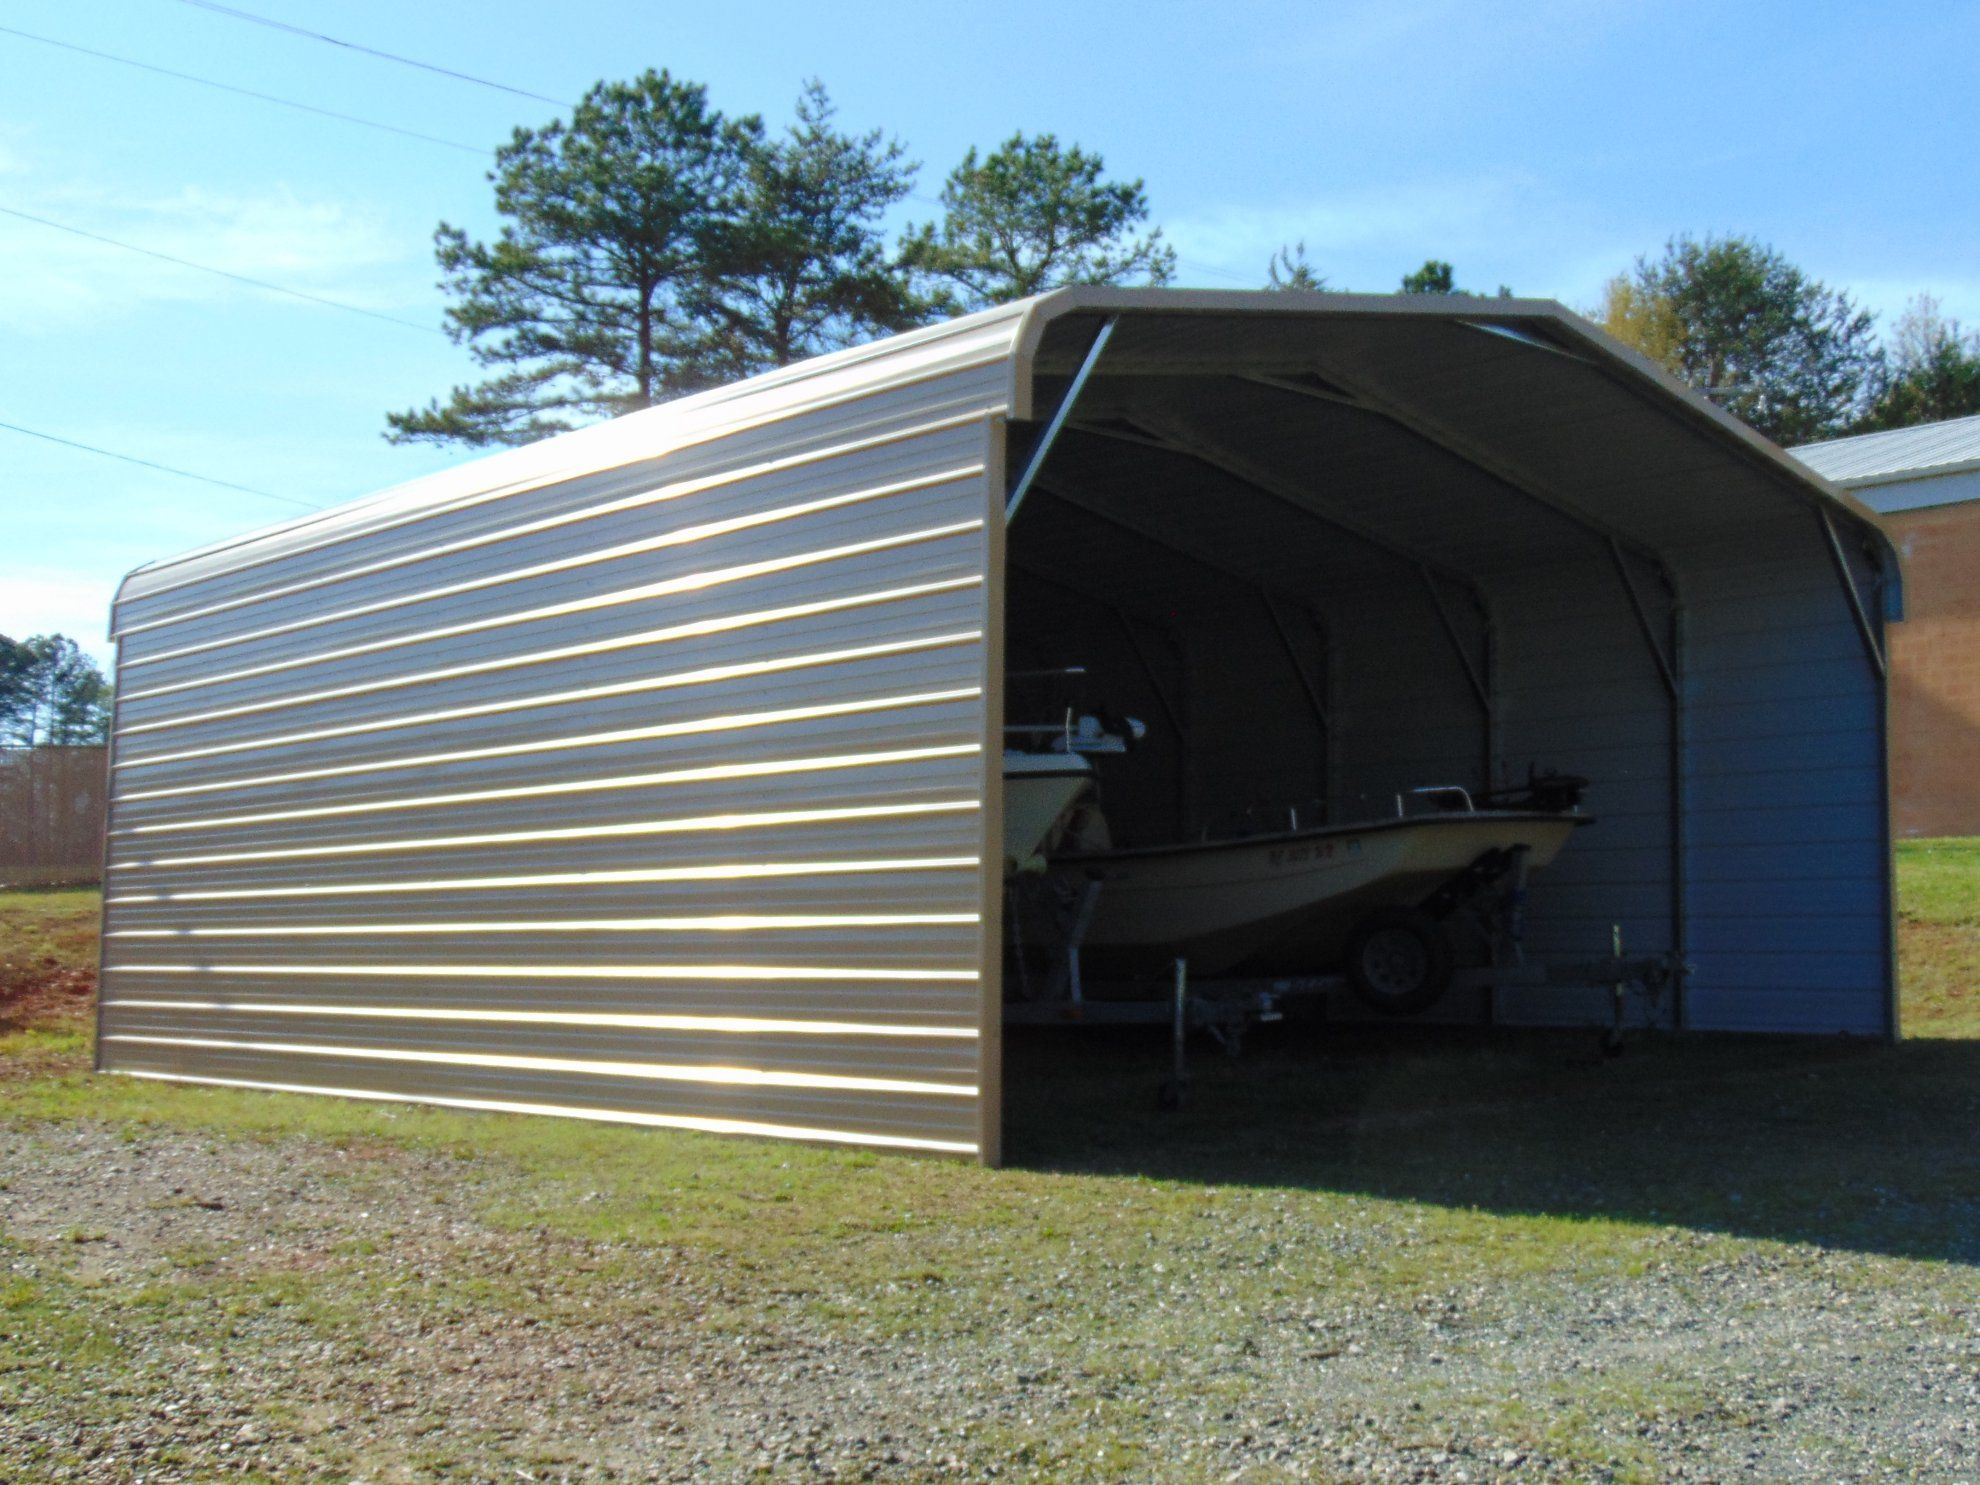 Protect Your Boats And Rvs From The Snow Sun Wind And Rain With A New Metal Enclosure Enterprise Supercenter Can Custom B Boat Covers Metal Rv Carports Boat